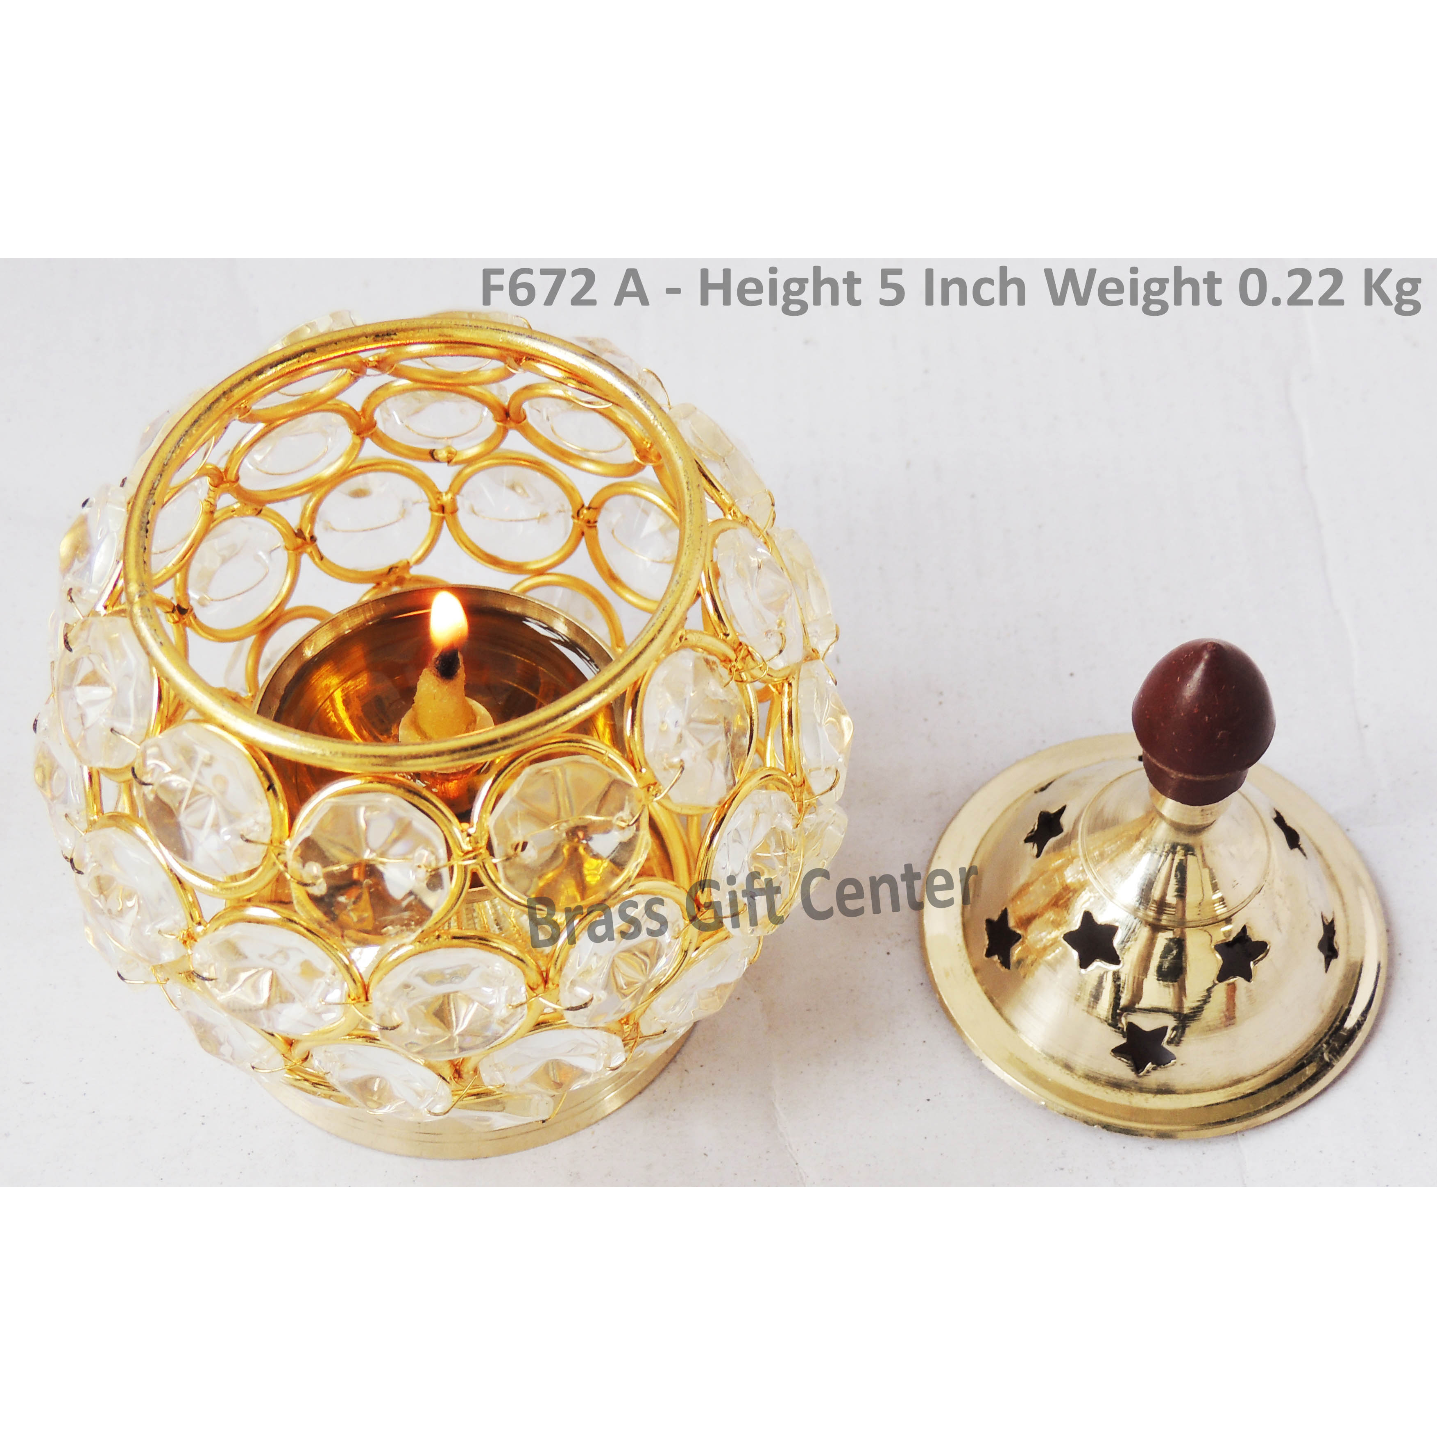 Brass Oil Lamp Deepak With Crystal Beads Height 5 Inch (F672 A)